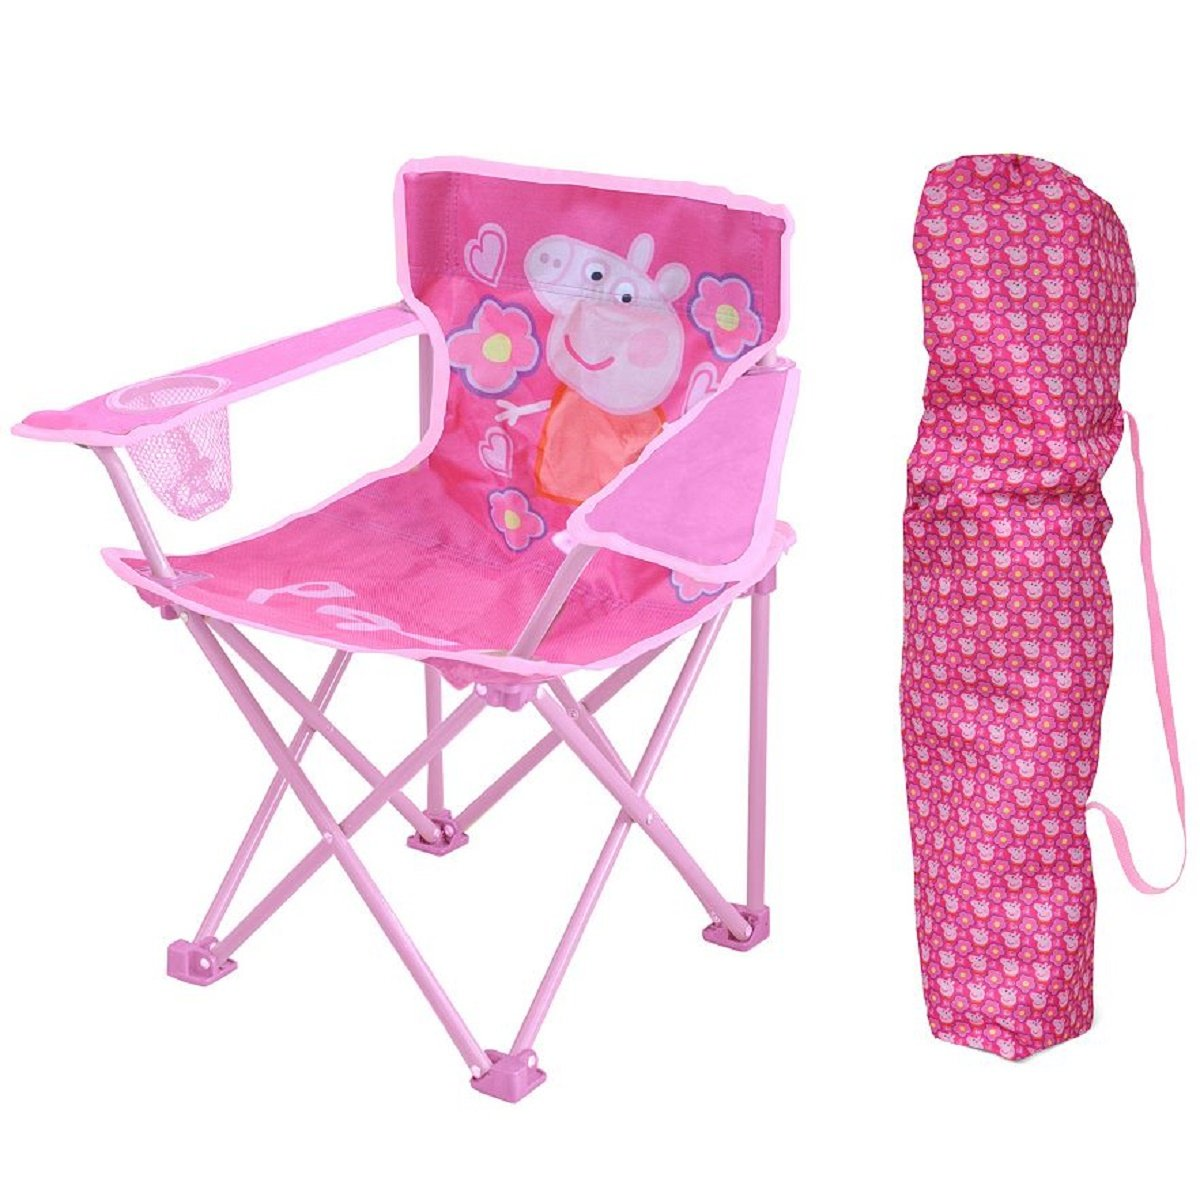 Amazing Pink Fold Up Chair #6 - Amazon.com